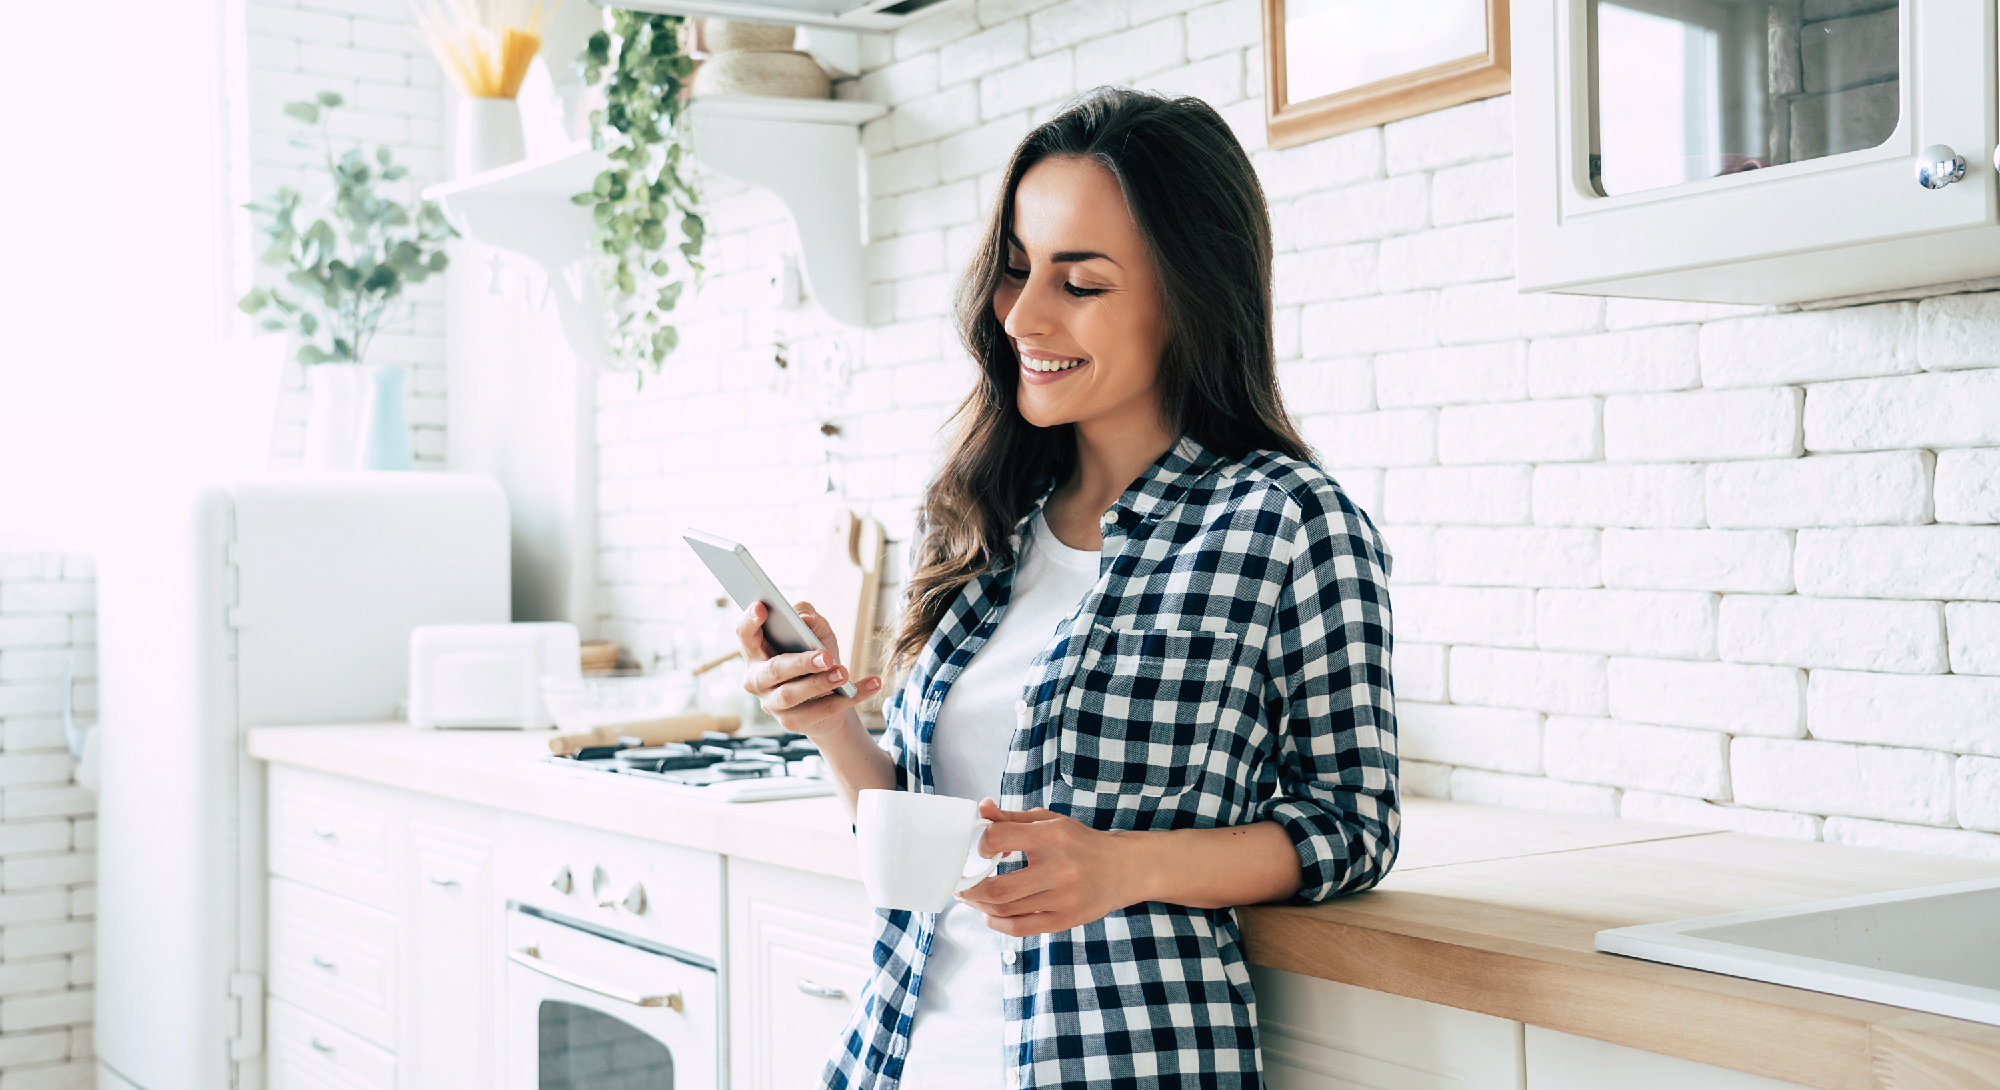 Woman holding coffee cup and looking at her phone in kitchen